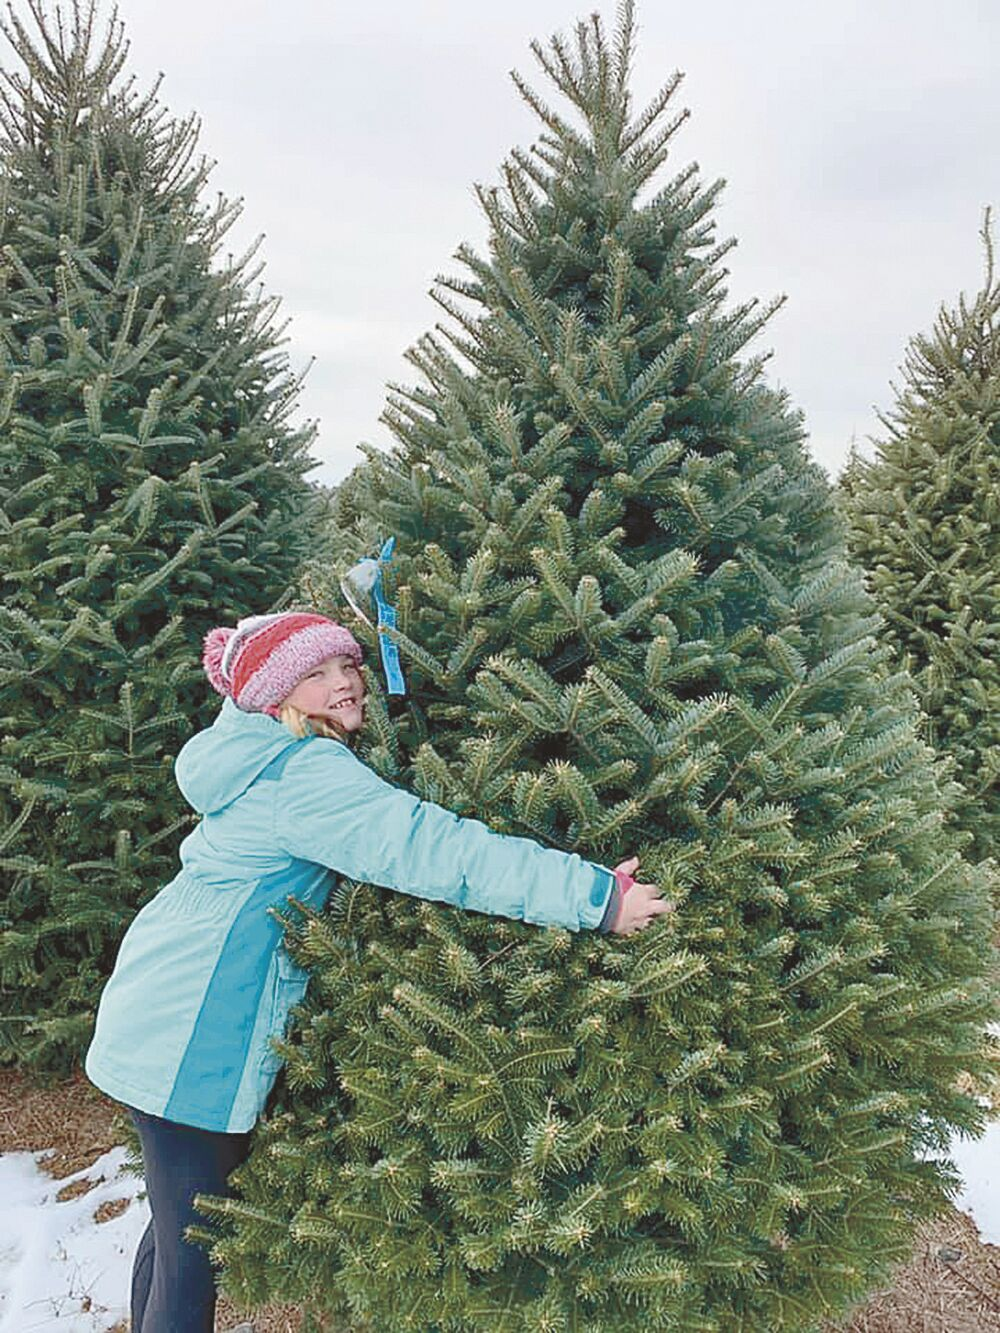 Tis the season to visit a Pine County tree farm1